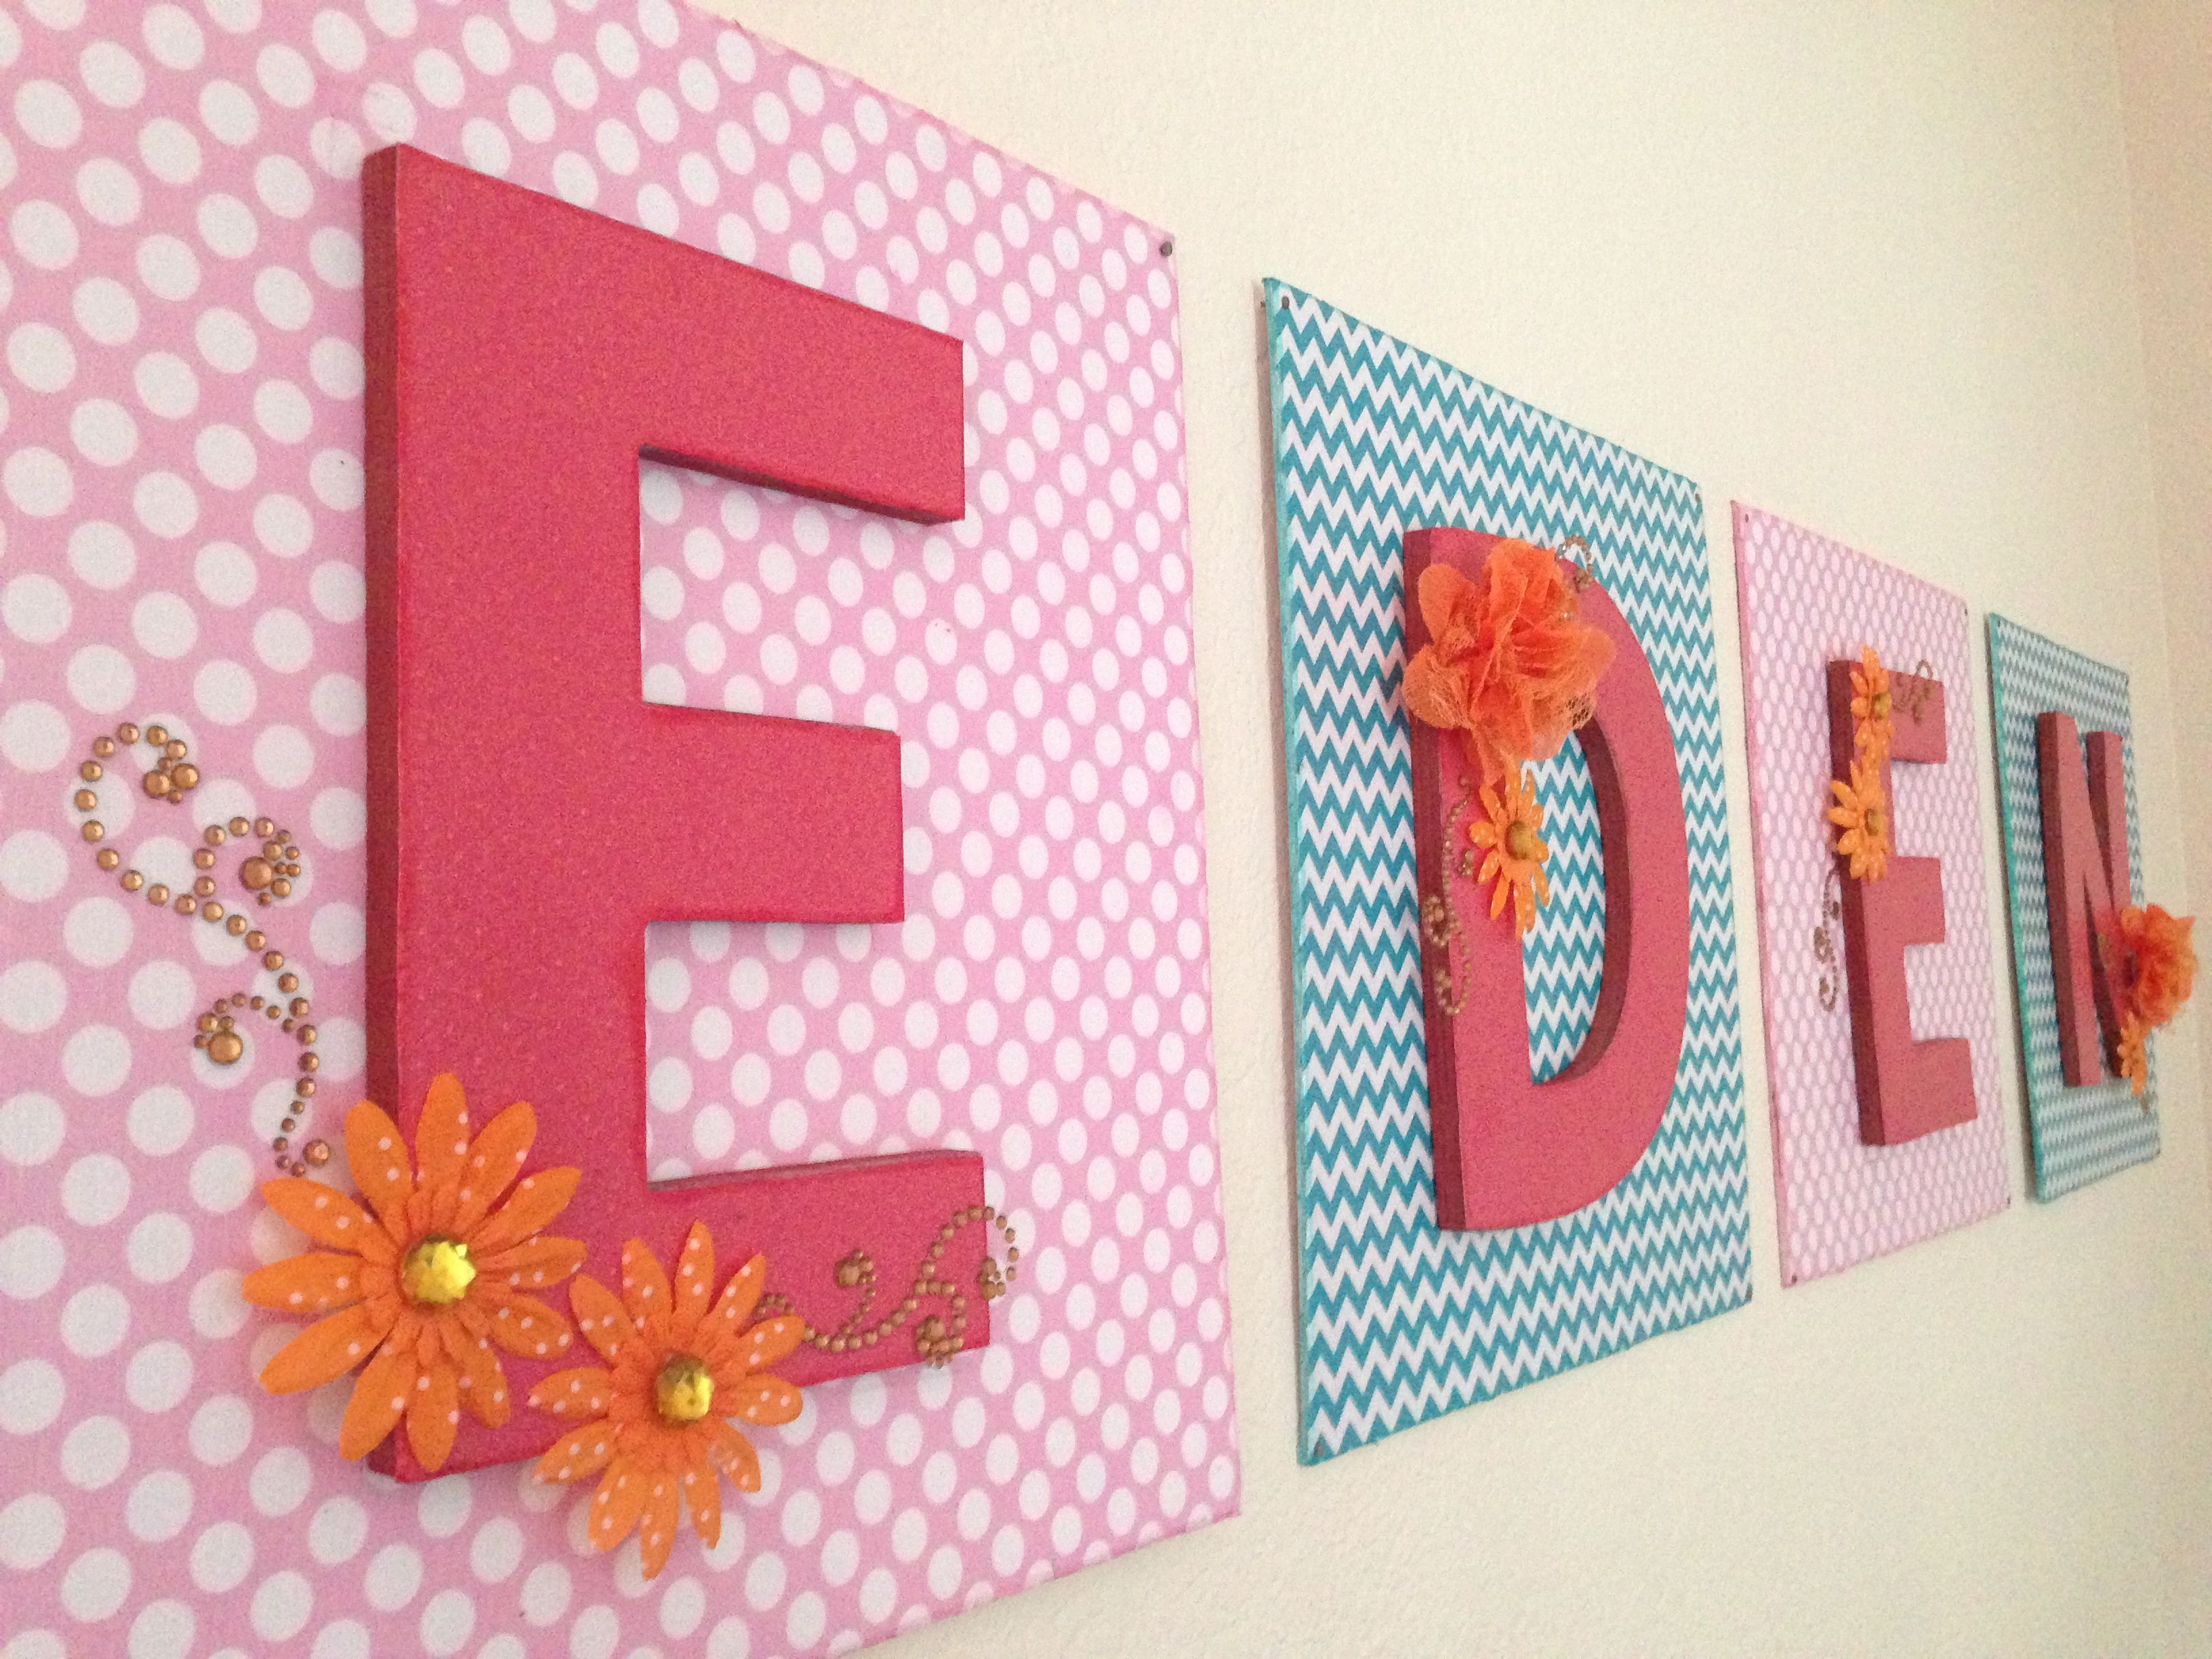 Diy nursery letters baby name wall art eden modge podge for Homemade wall letters